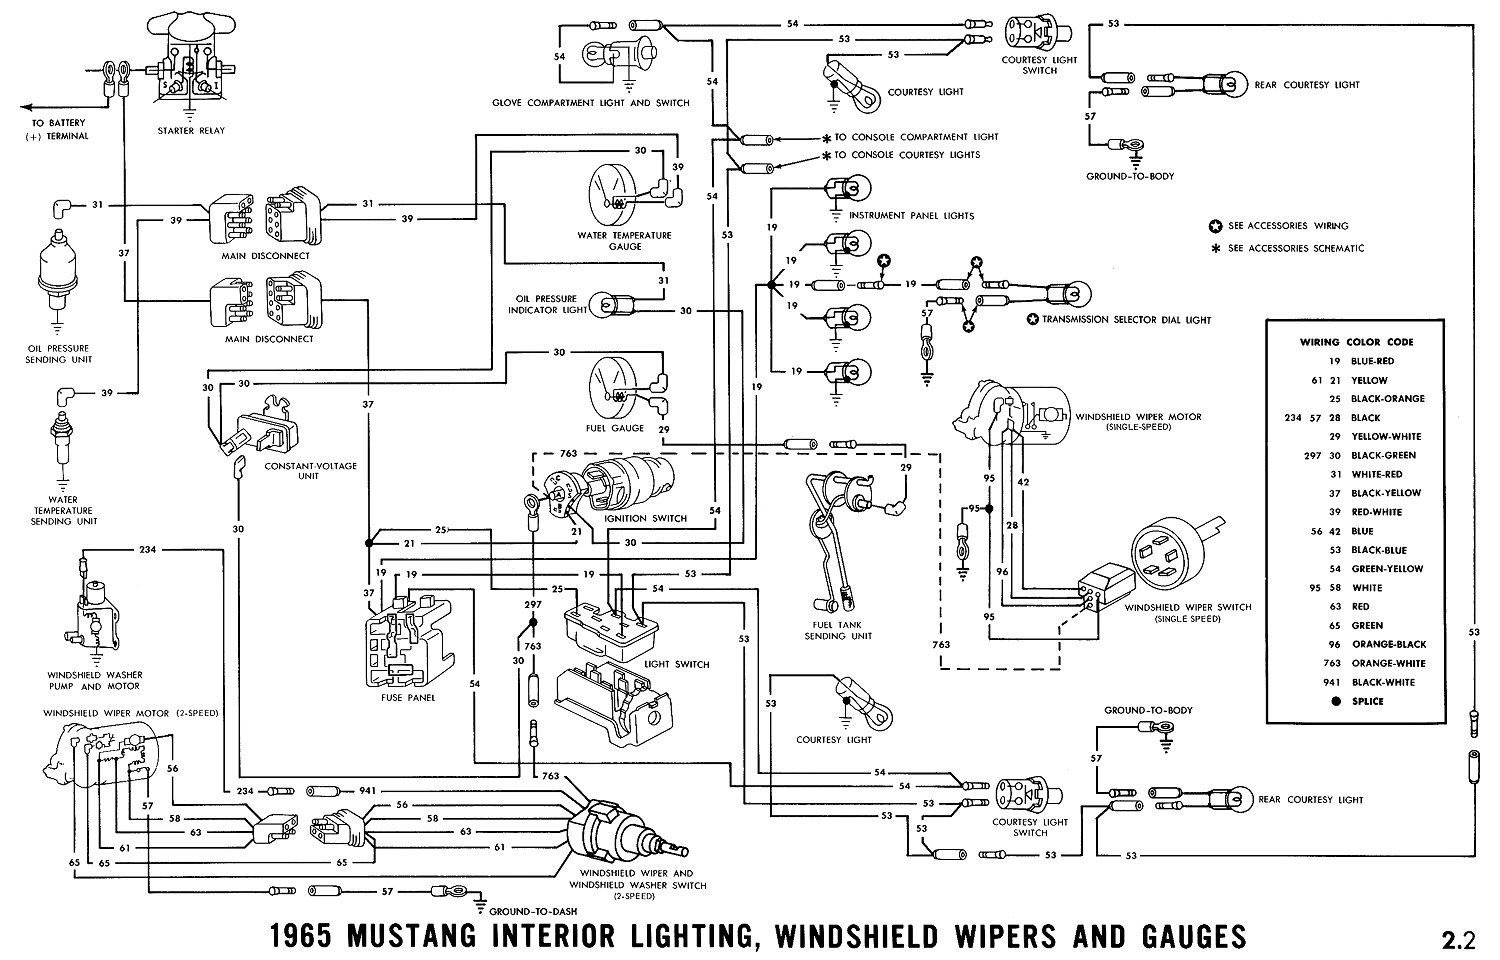 65 mustang turn signal switch wiring diagram 65 mustang turn 1965 mustang wiring diagrams average joe restoration 65 mustang turn signal switch